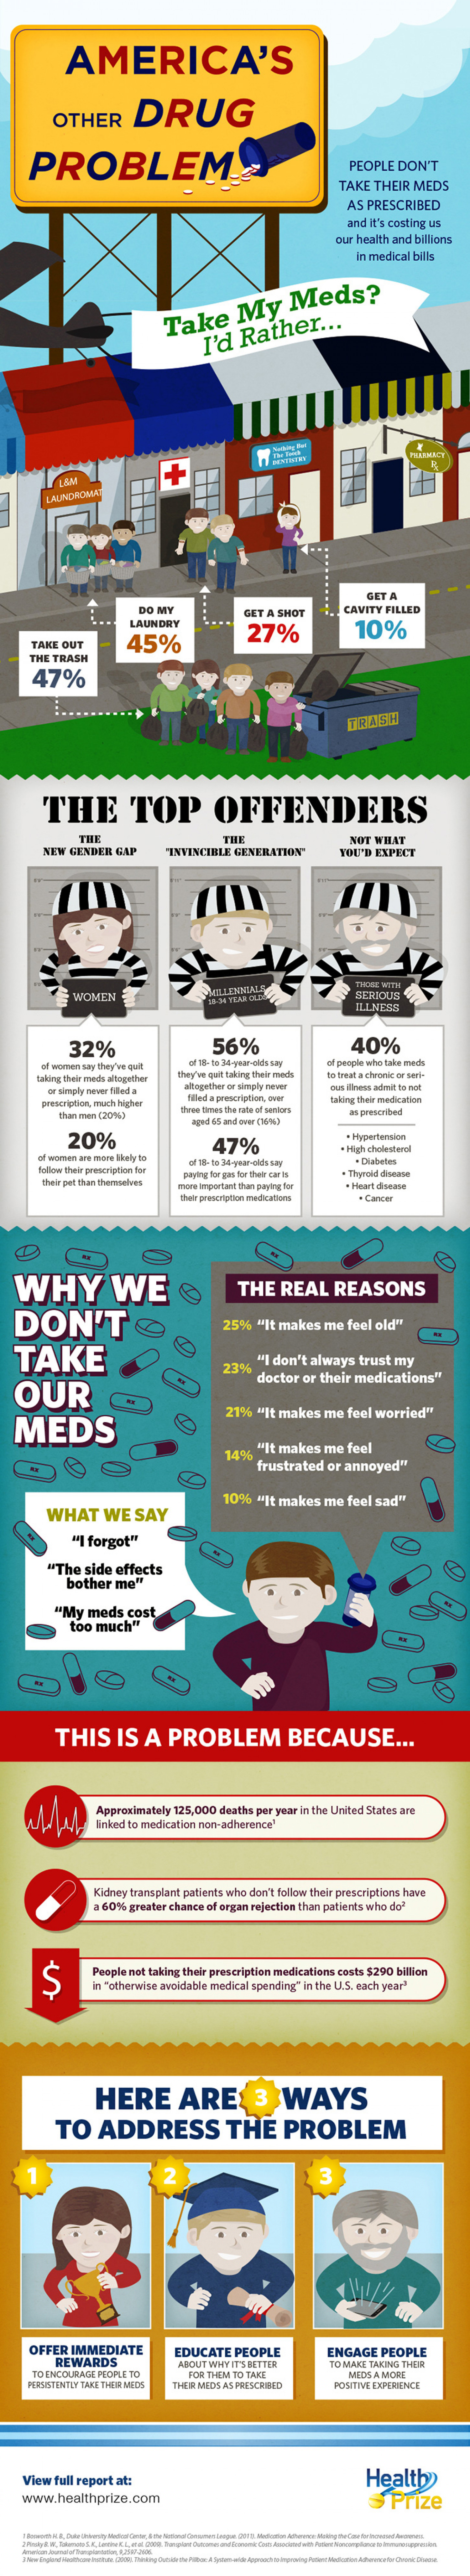 Other Drug Problem In America Infographic